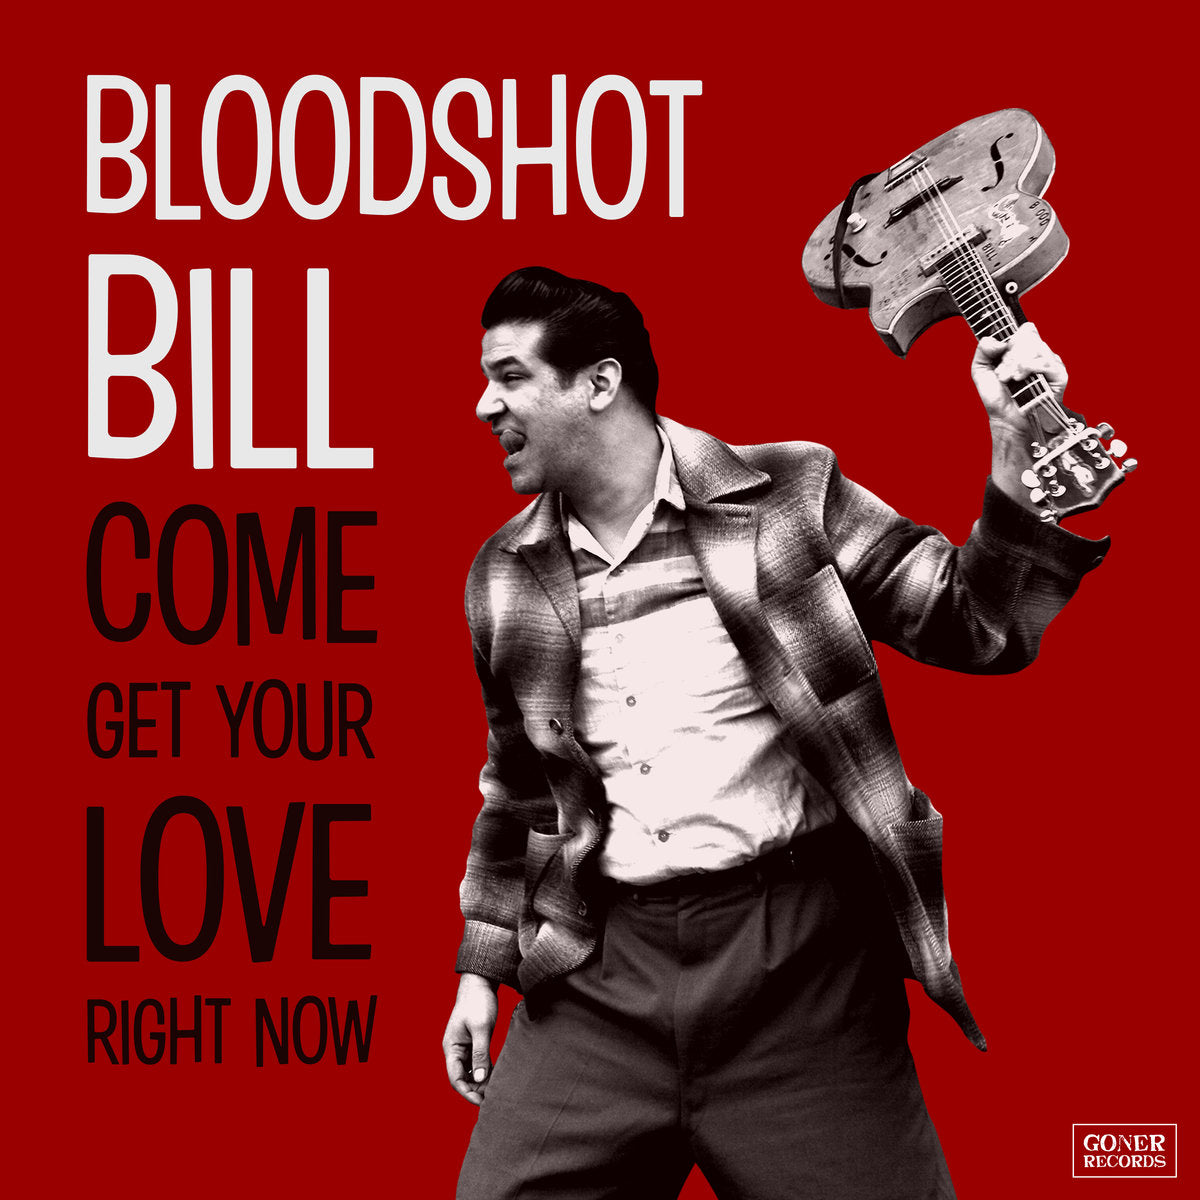 Bloodshot Bill - Come Get Your Love Right Now - New LP